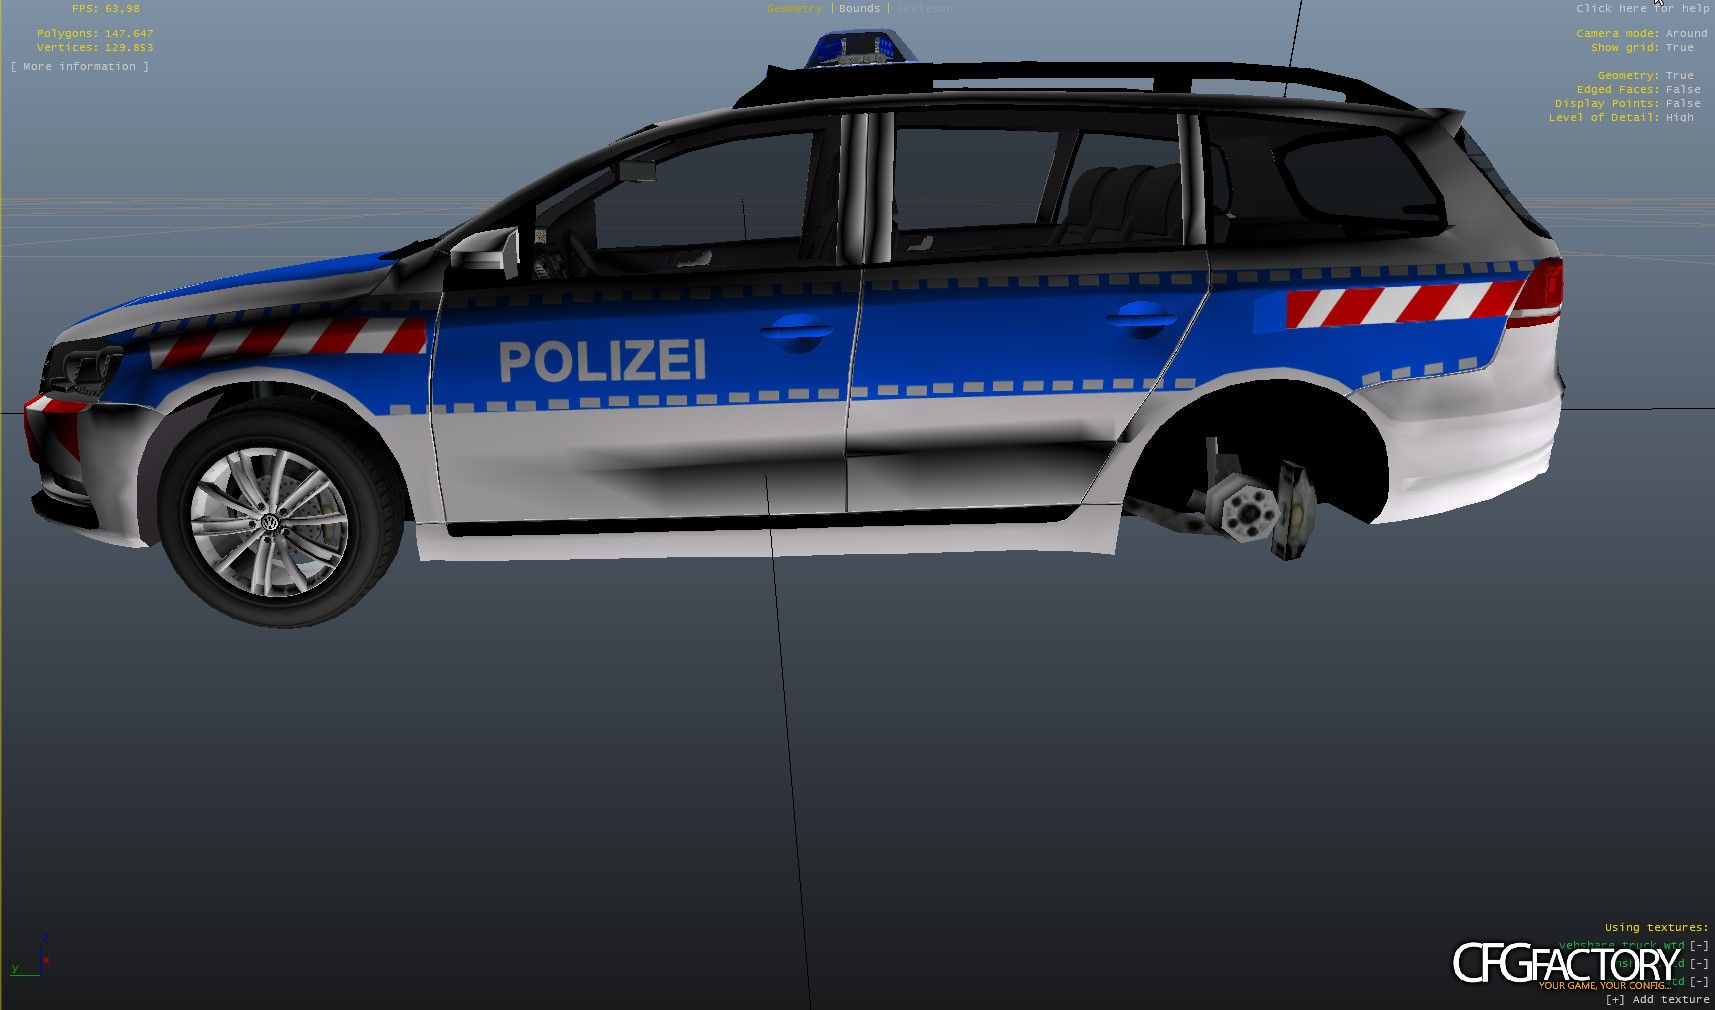 volkswagen passat b7 fustw polizei rtk 7 autobahnp. Black Bedroom Furniture Sets. Home Design Ideas